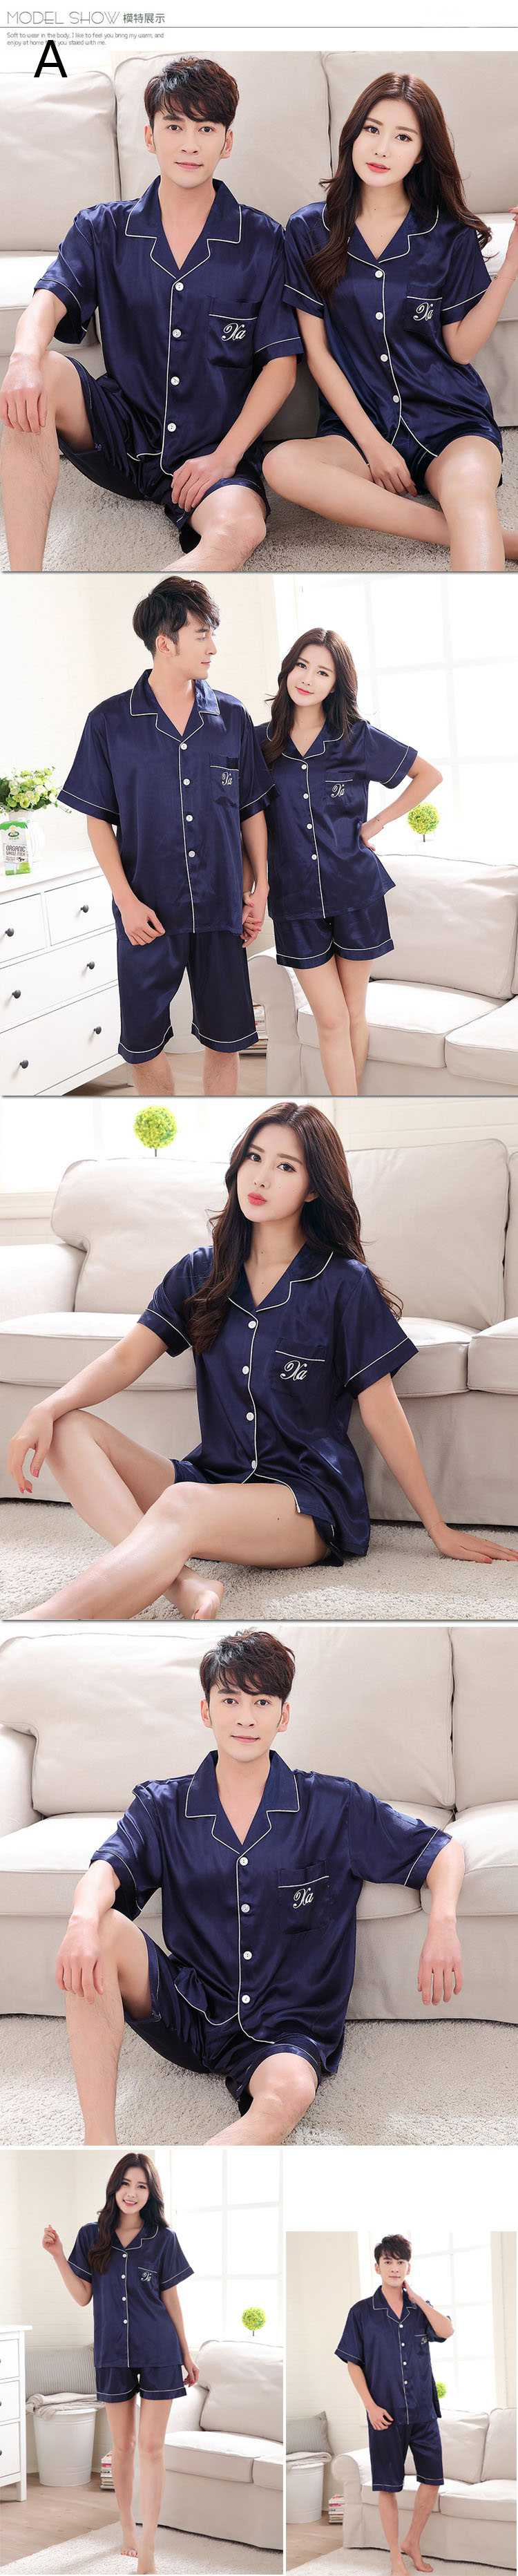 Summer Korean simulation silk couple short sleeve wide loose shirt V-neck pajamas suit on sale 1